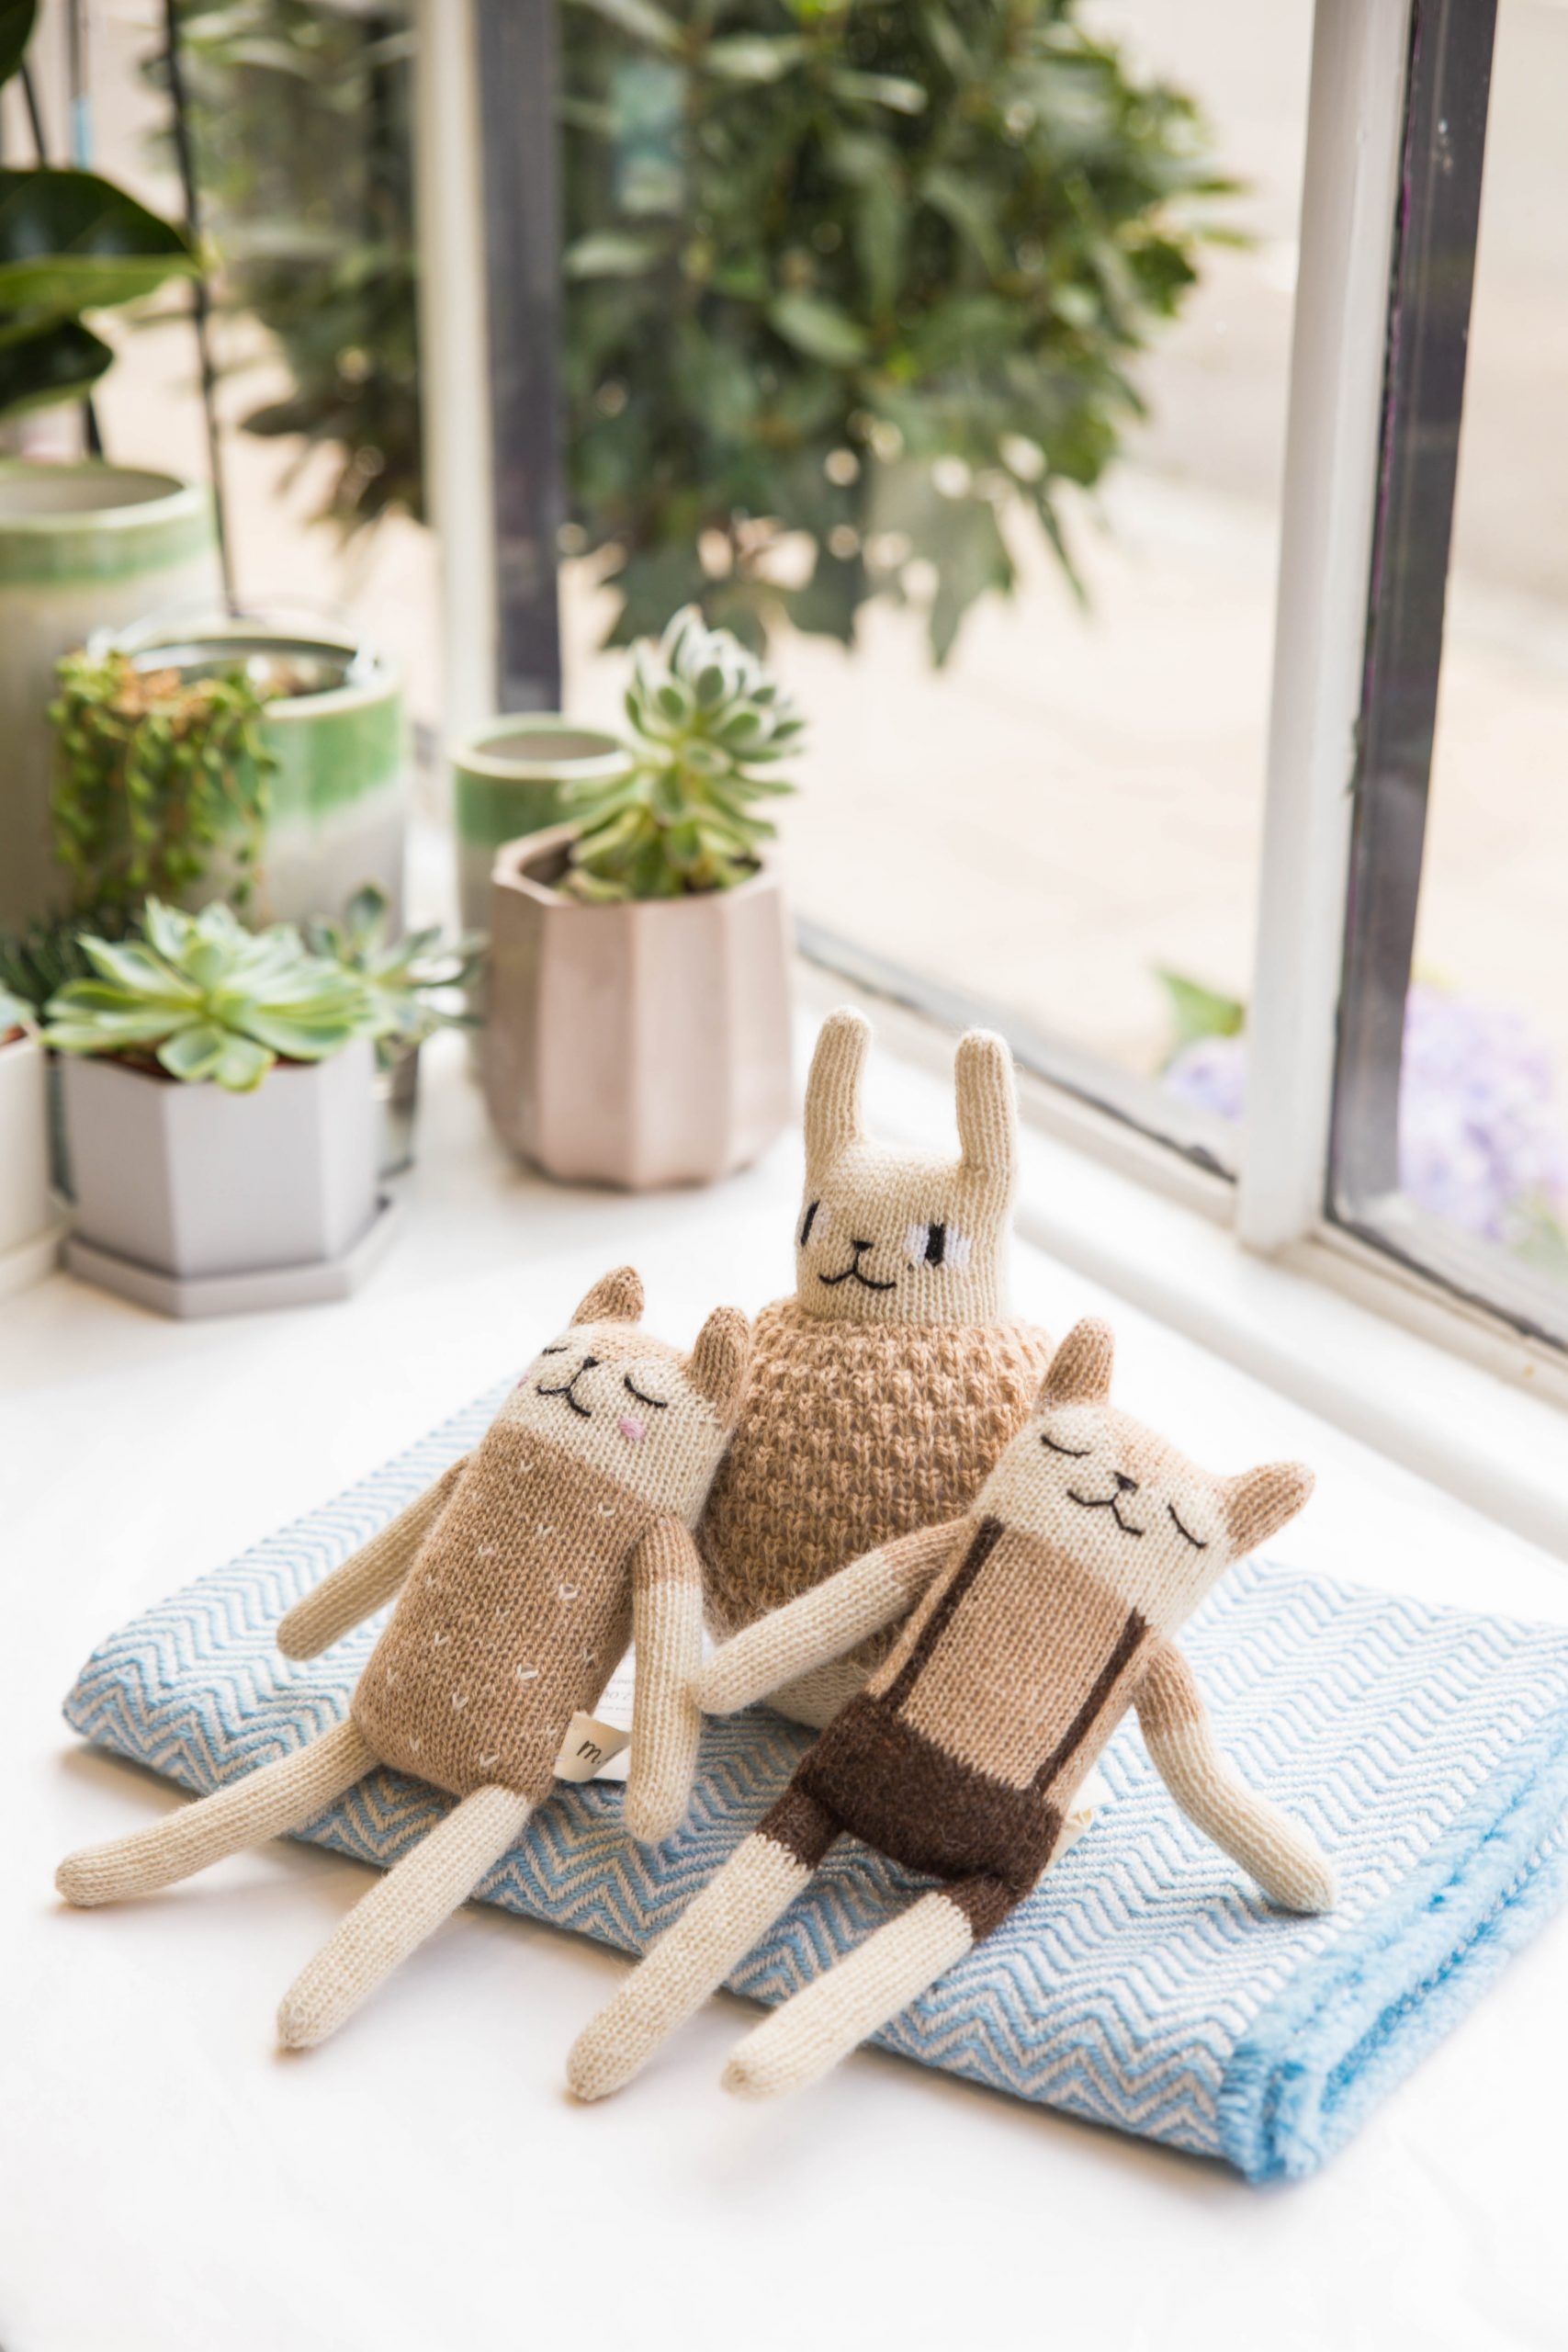 lifestyle product photography of knitted toy giftware